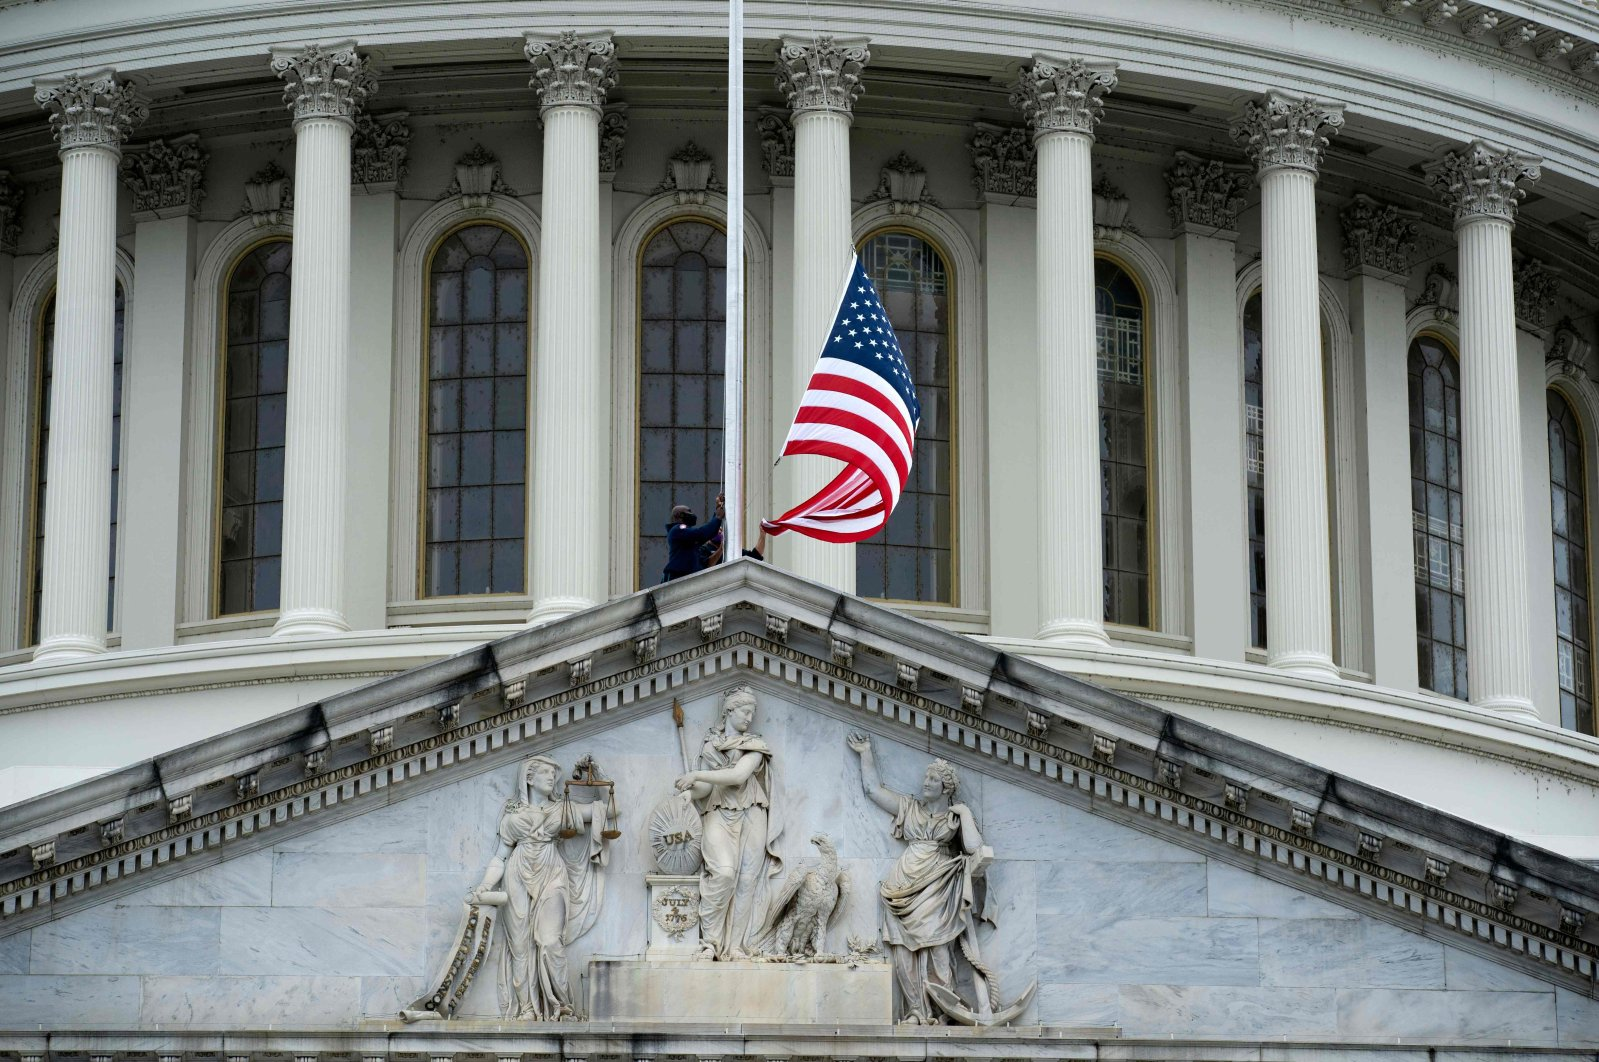 Workers fly the American flag at half staff over the US Capitol building in Washington, D.C., on Sept. 25, 2020. (AFP Photo)